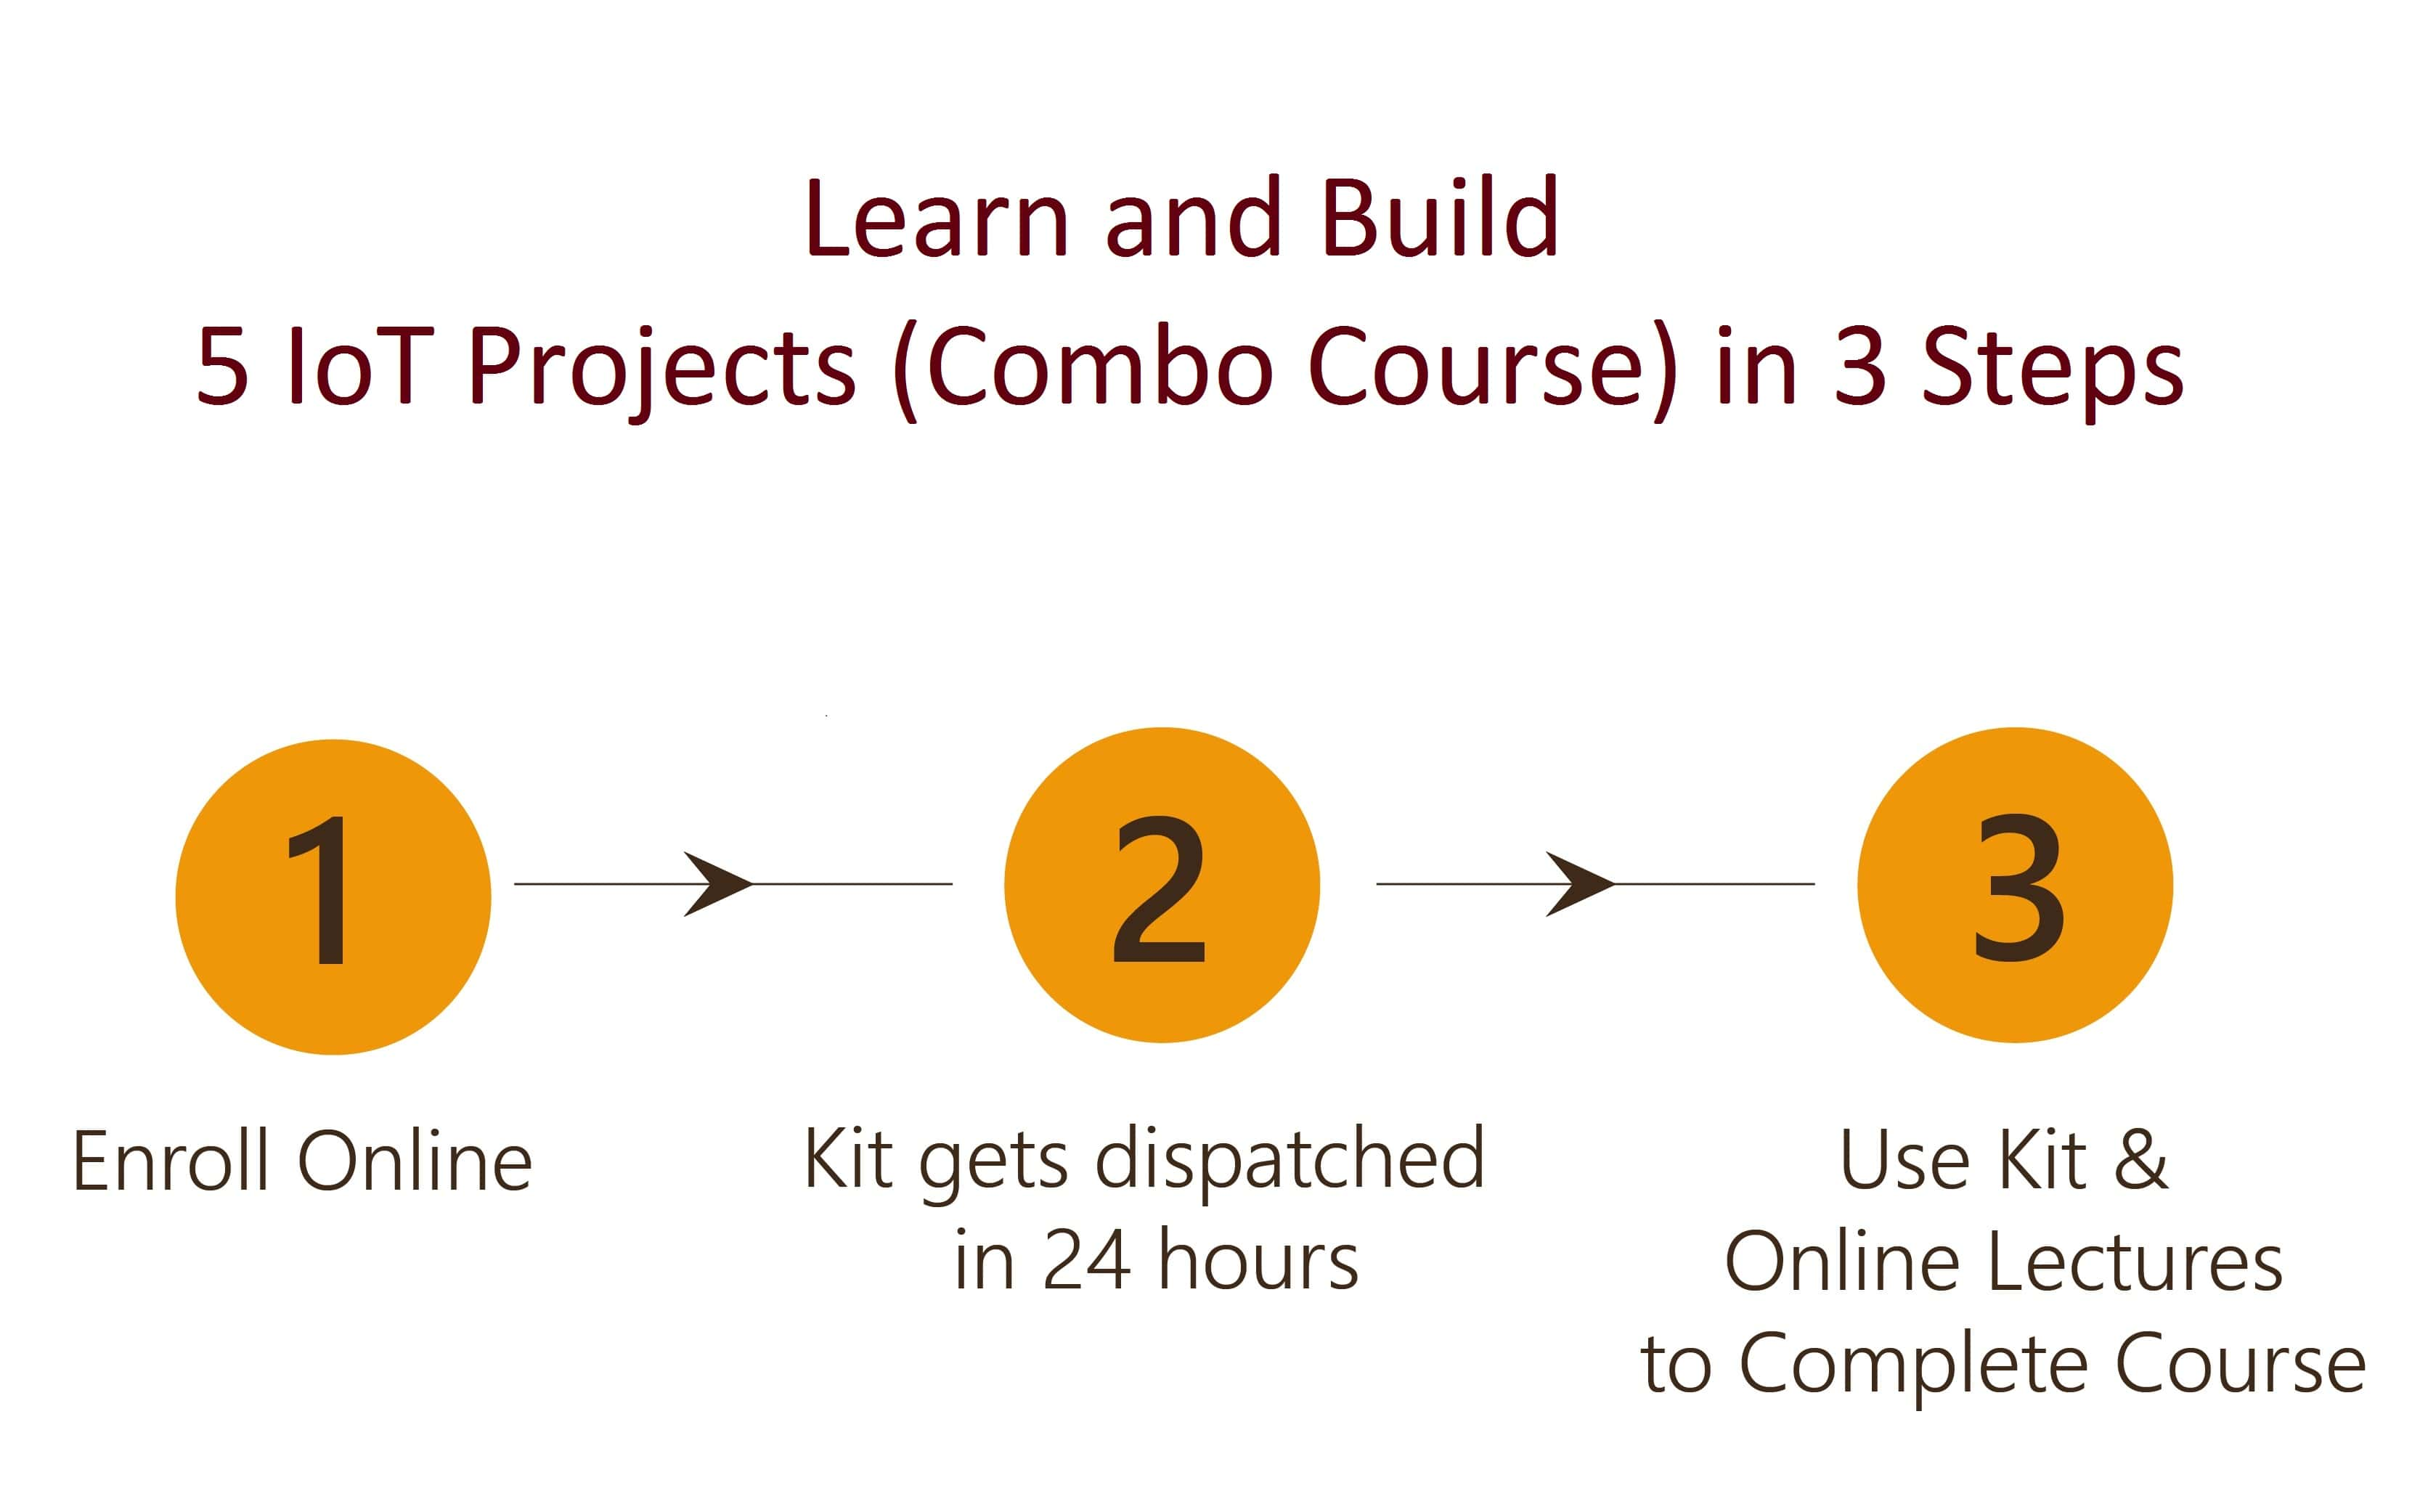 5 IoT Projects Online Project based Course (Combo Course)